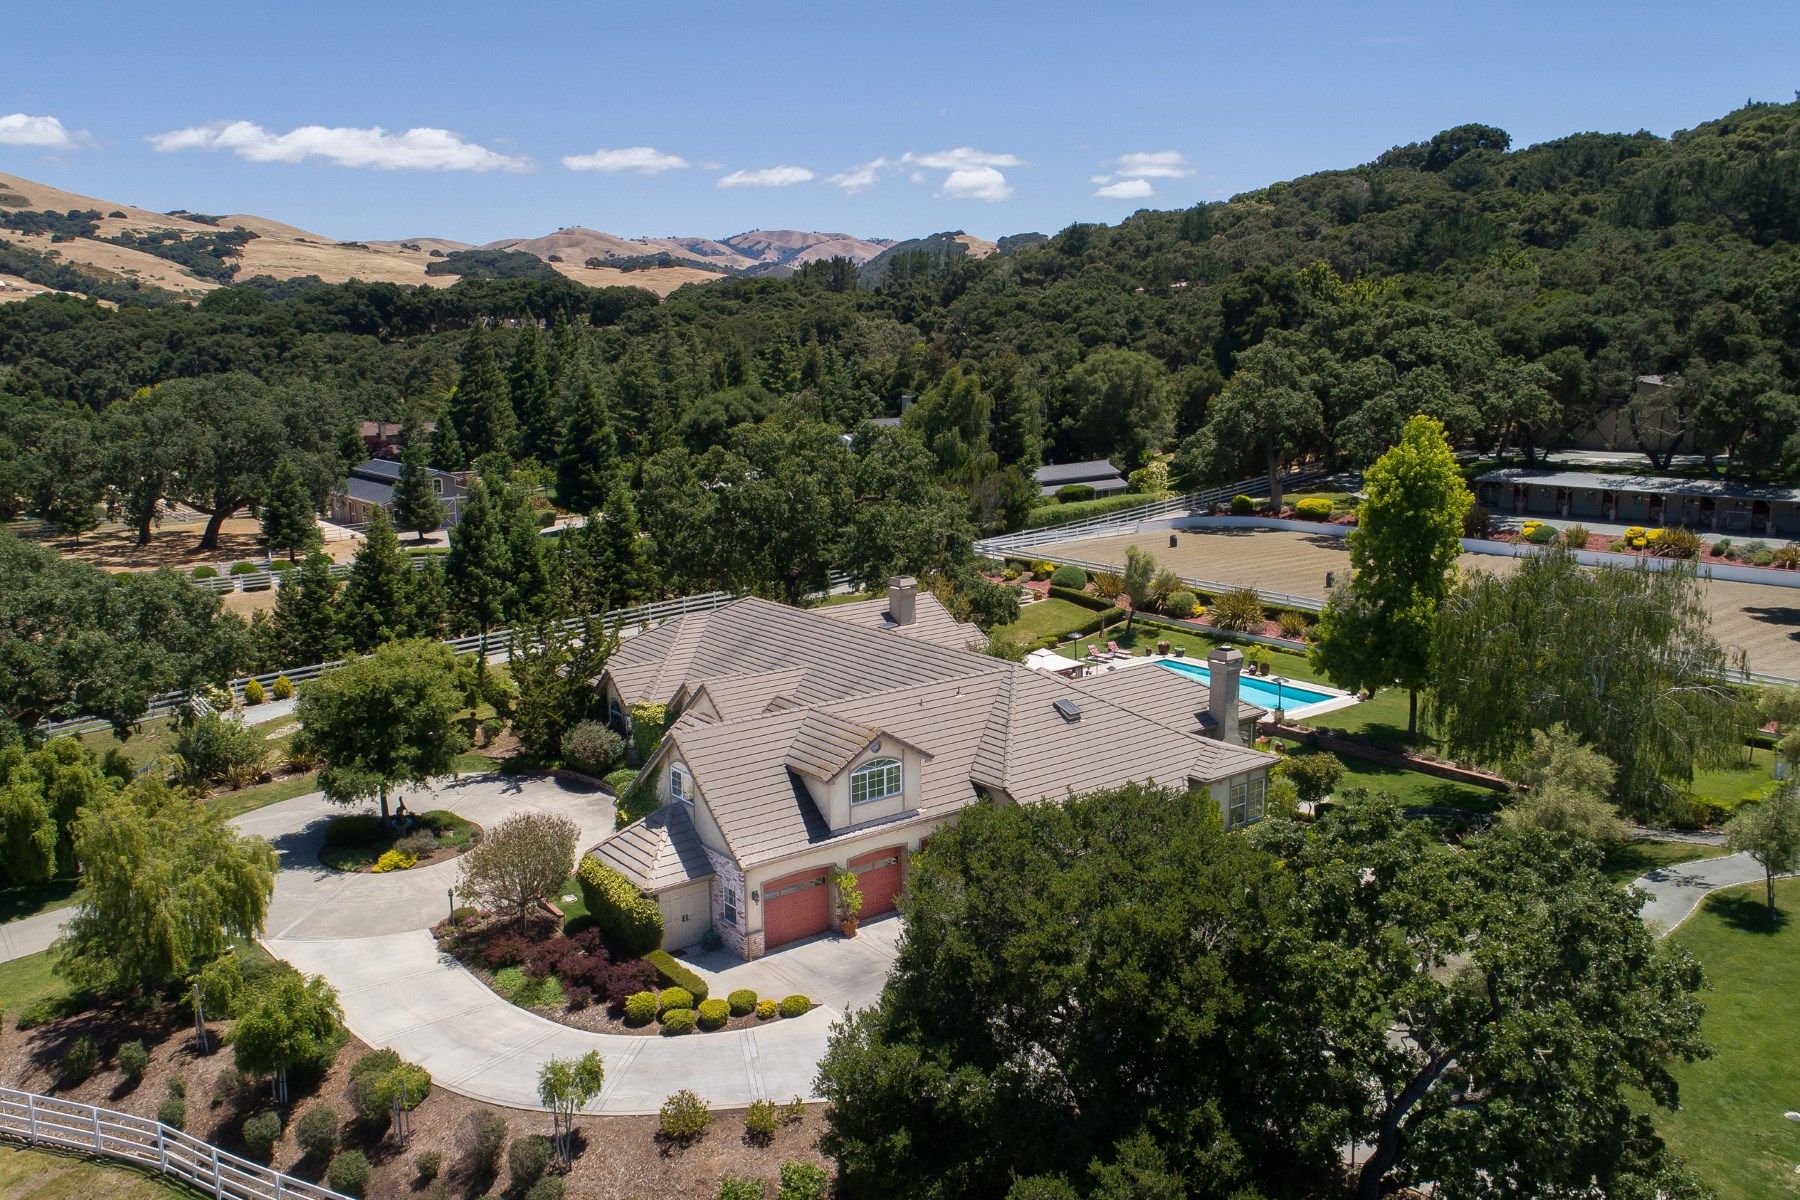 Single Family Home for Sale at 6 Sleepy Hollow 6 Sleepy Hollow Drive Carmel Valley, California, 93924 United States